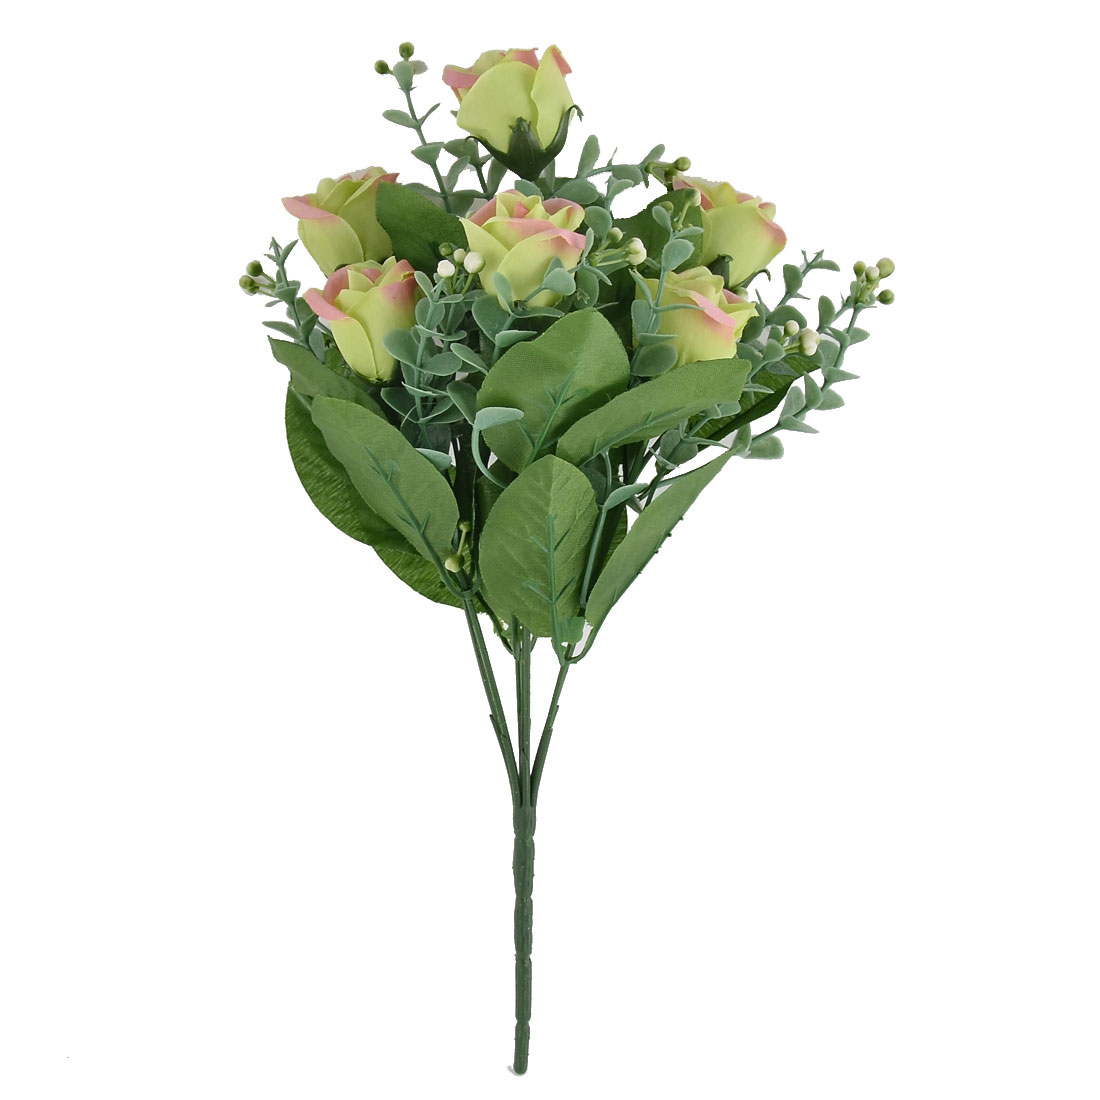 Festival Wedding Garden Ornament 7 Heads Blossom Artificial Rose Bouquet Green